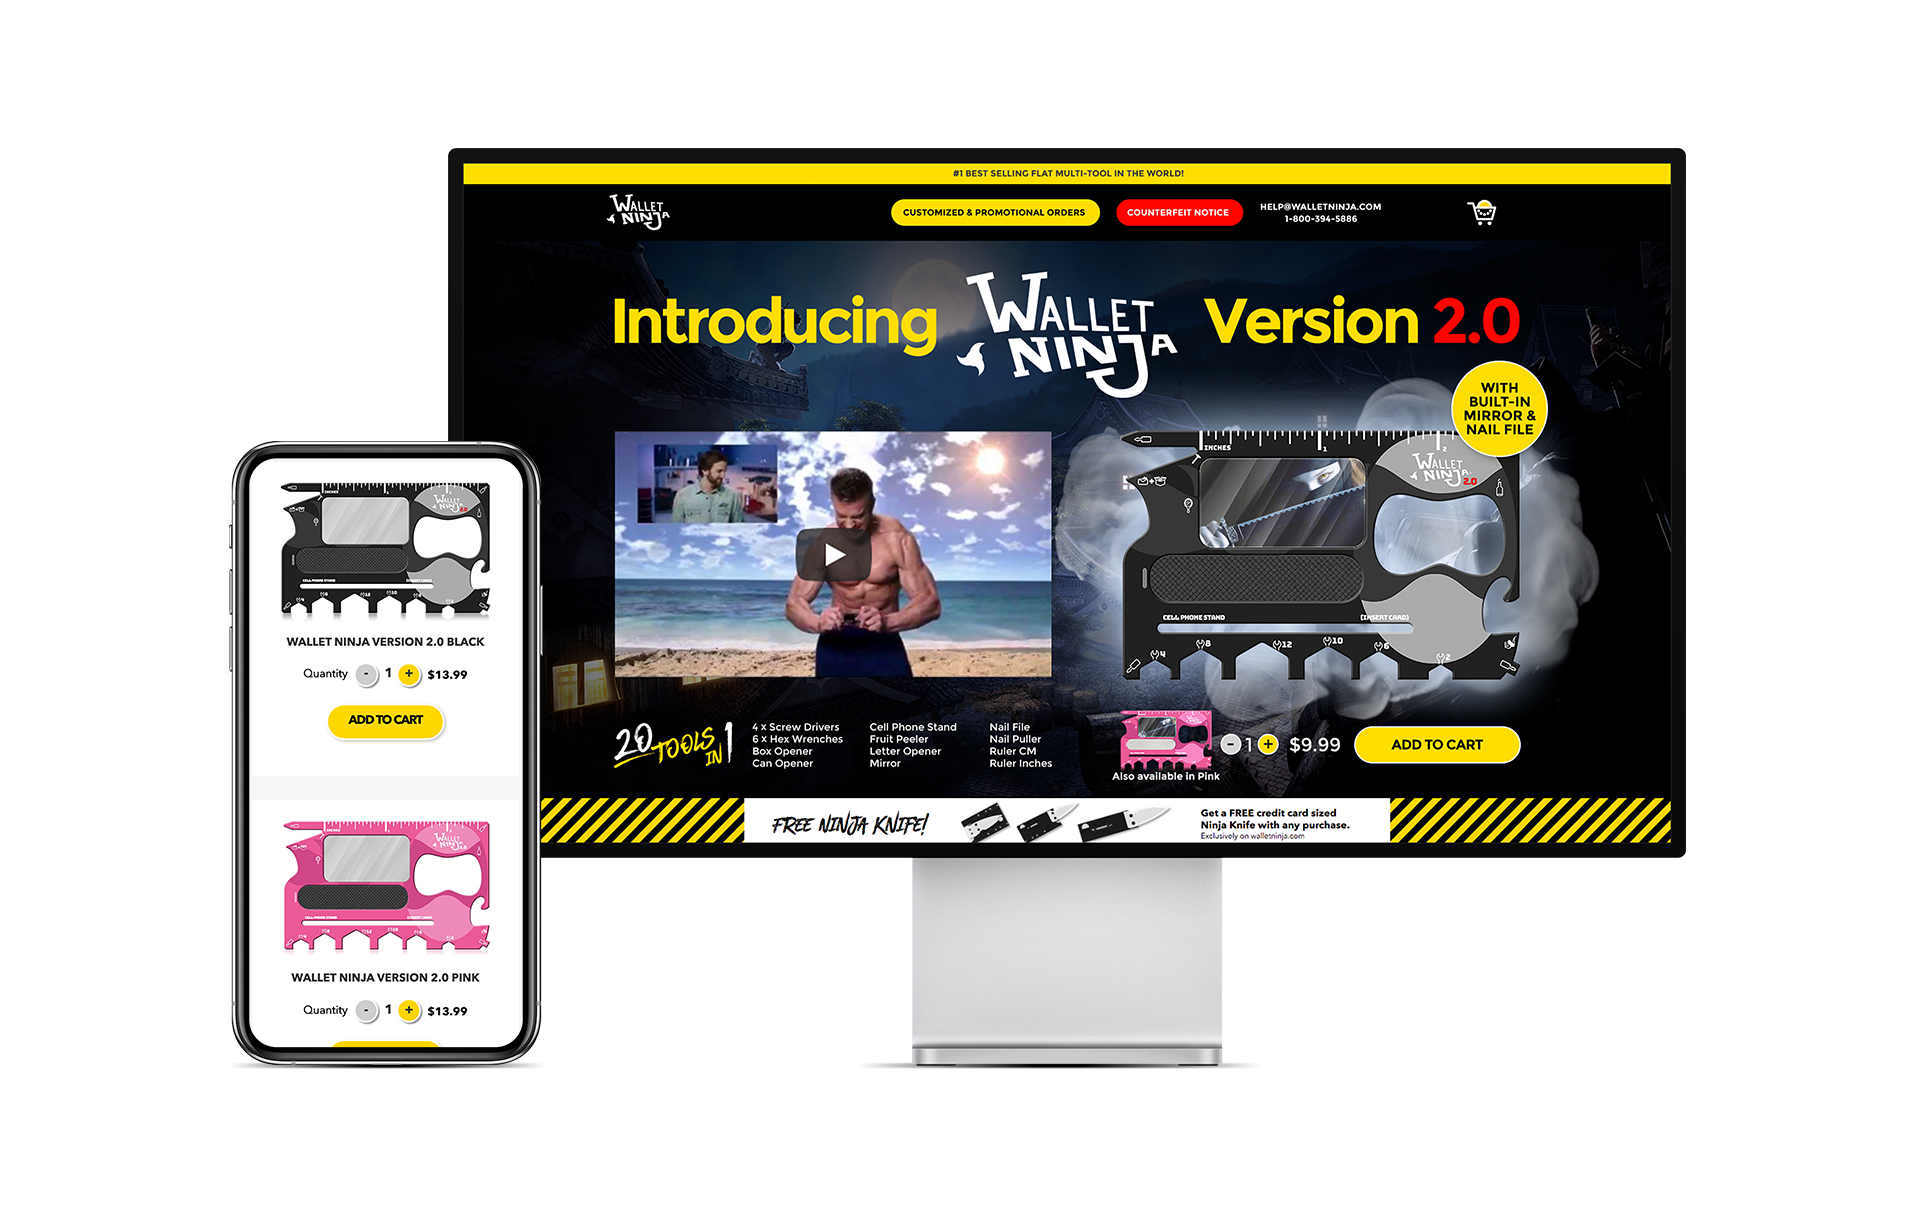 Wallet Ninja Website Design and Website Wordpress Woocommerce Development by Scott Luscombe of Creatibly